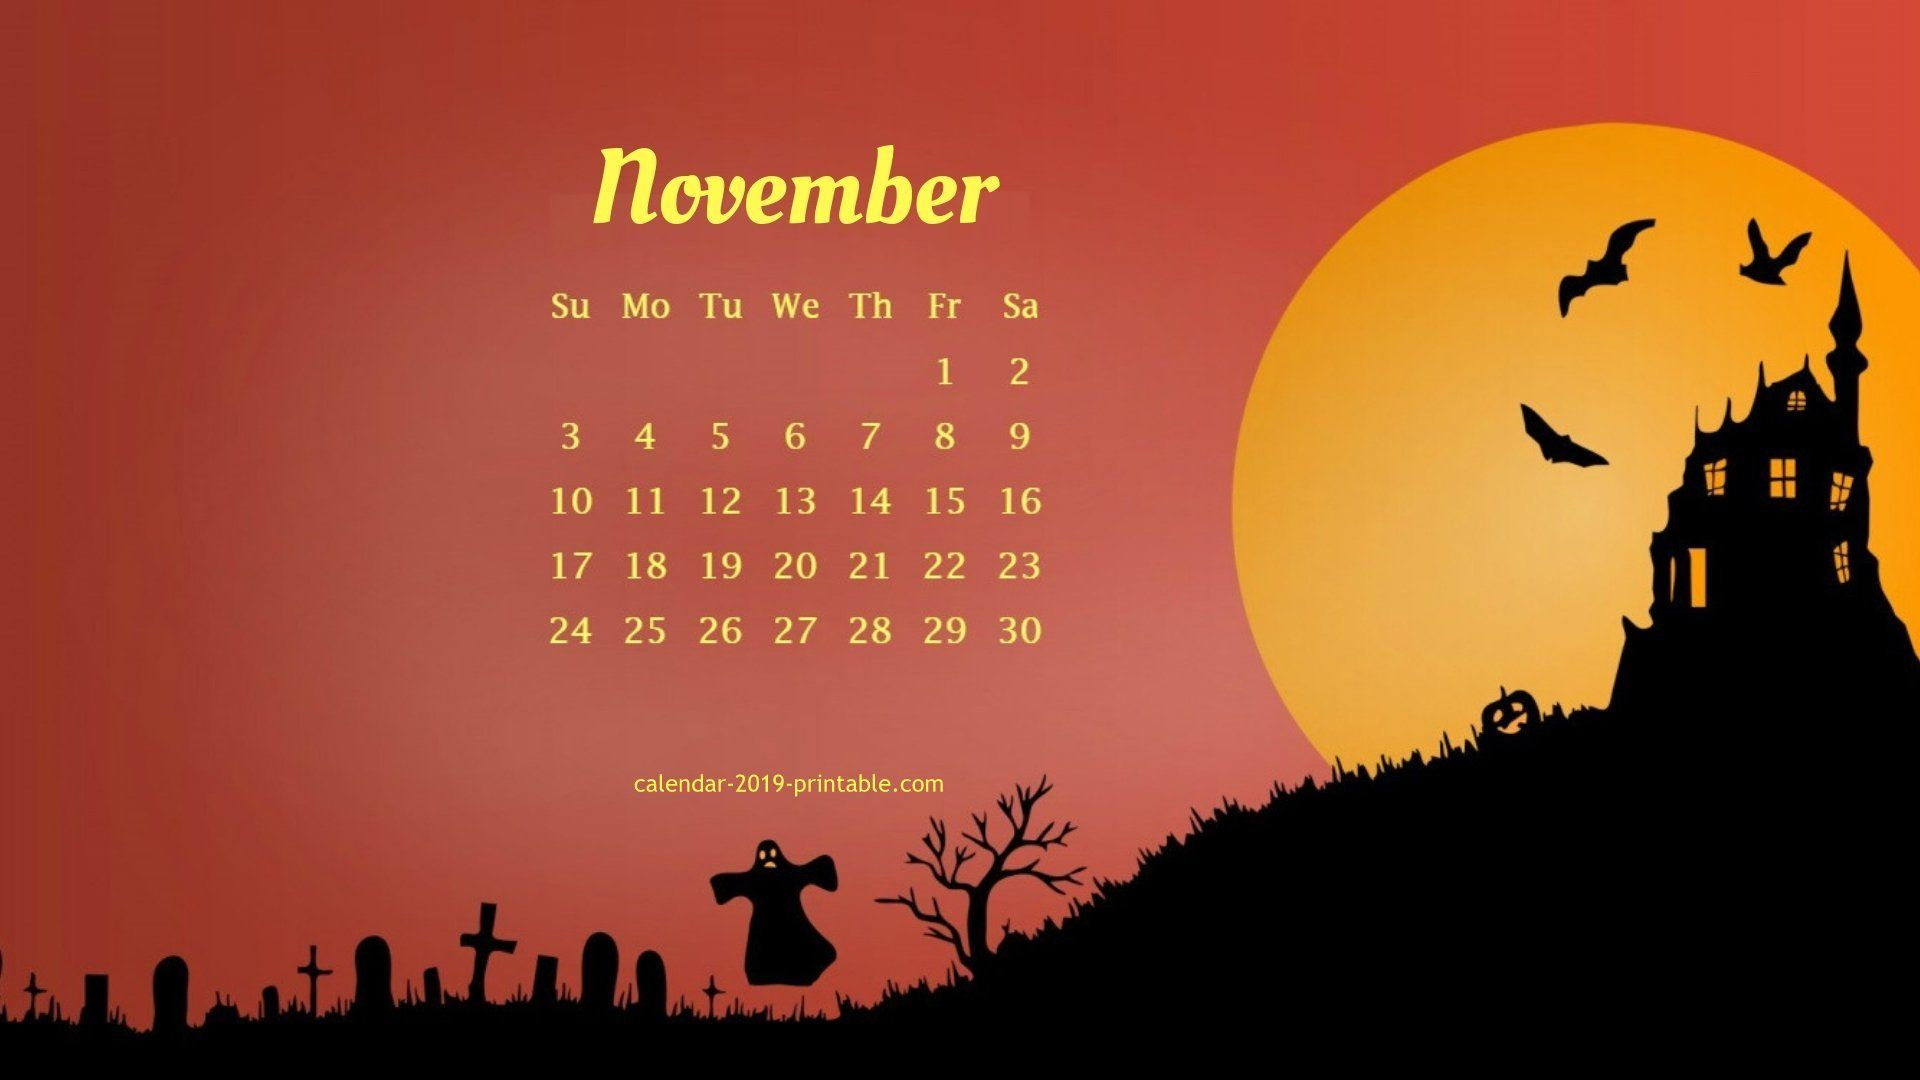 november 2019 unique calendar wallpaper Calendar